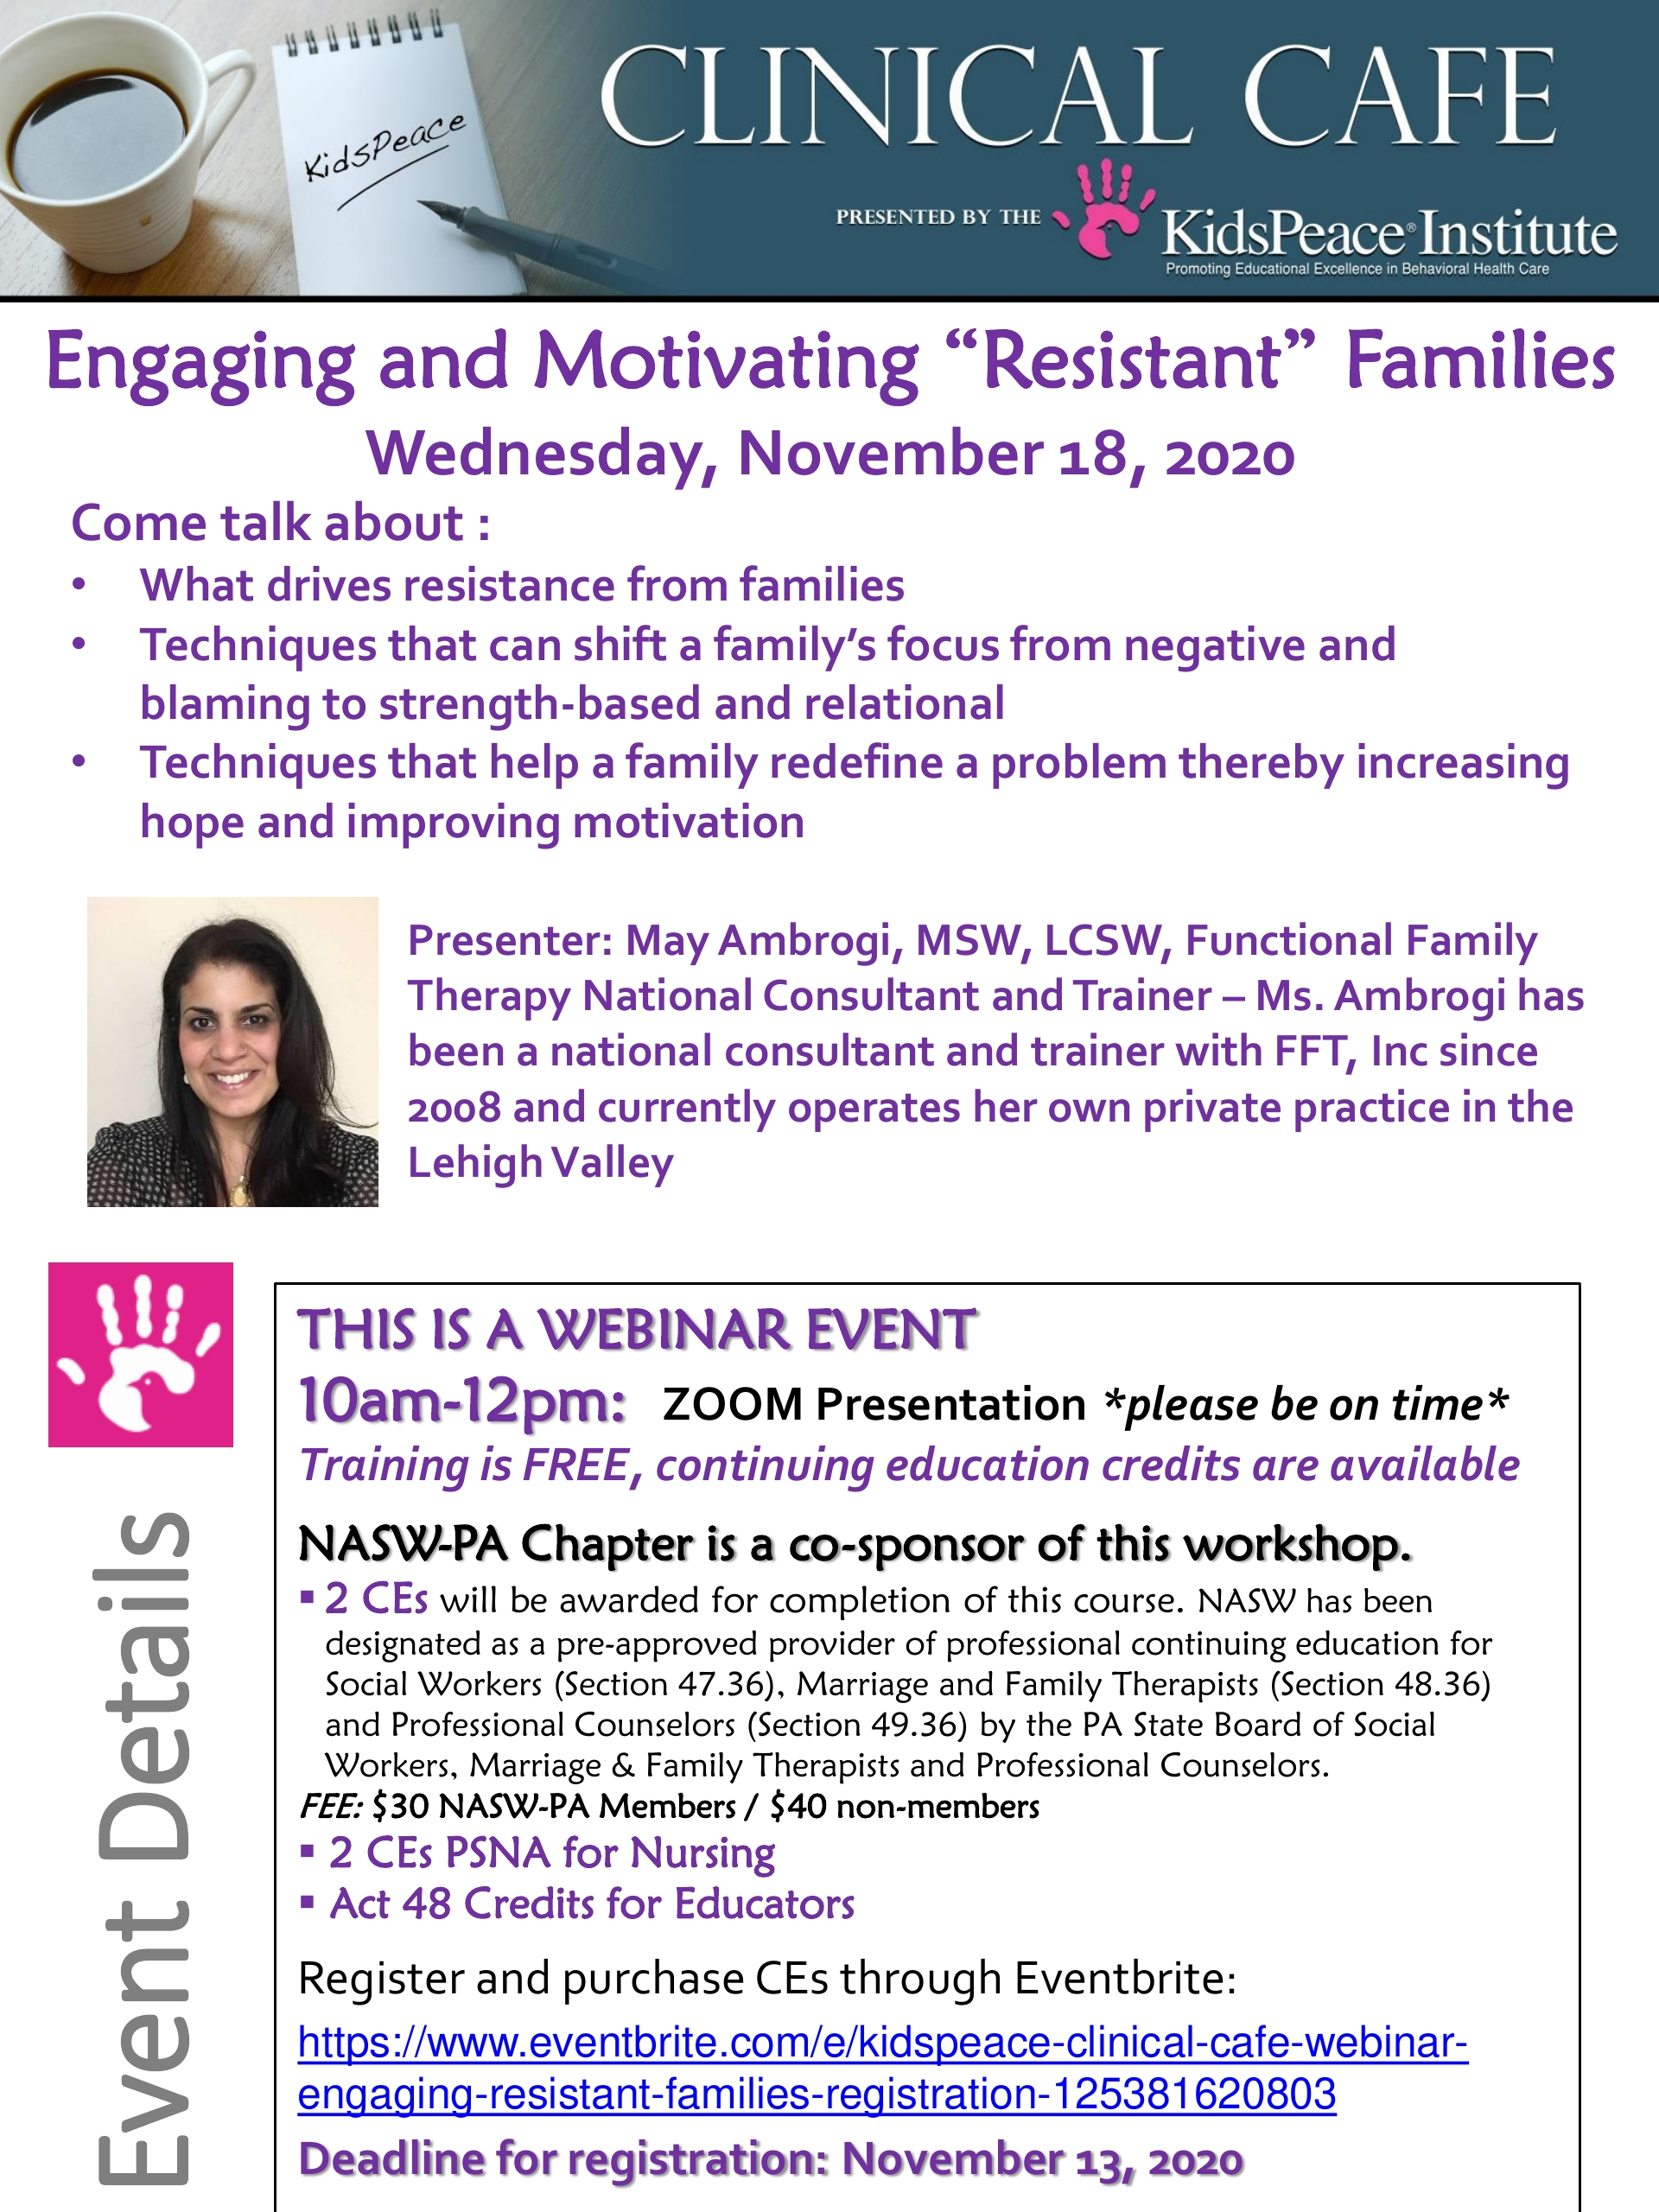 """KidsPeace VIRTUAL Clinical Café Engaging and Motivating """"Resistant"""" Families November 2020"""